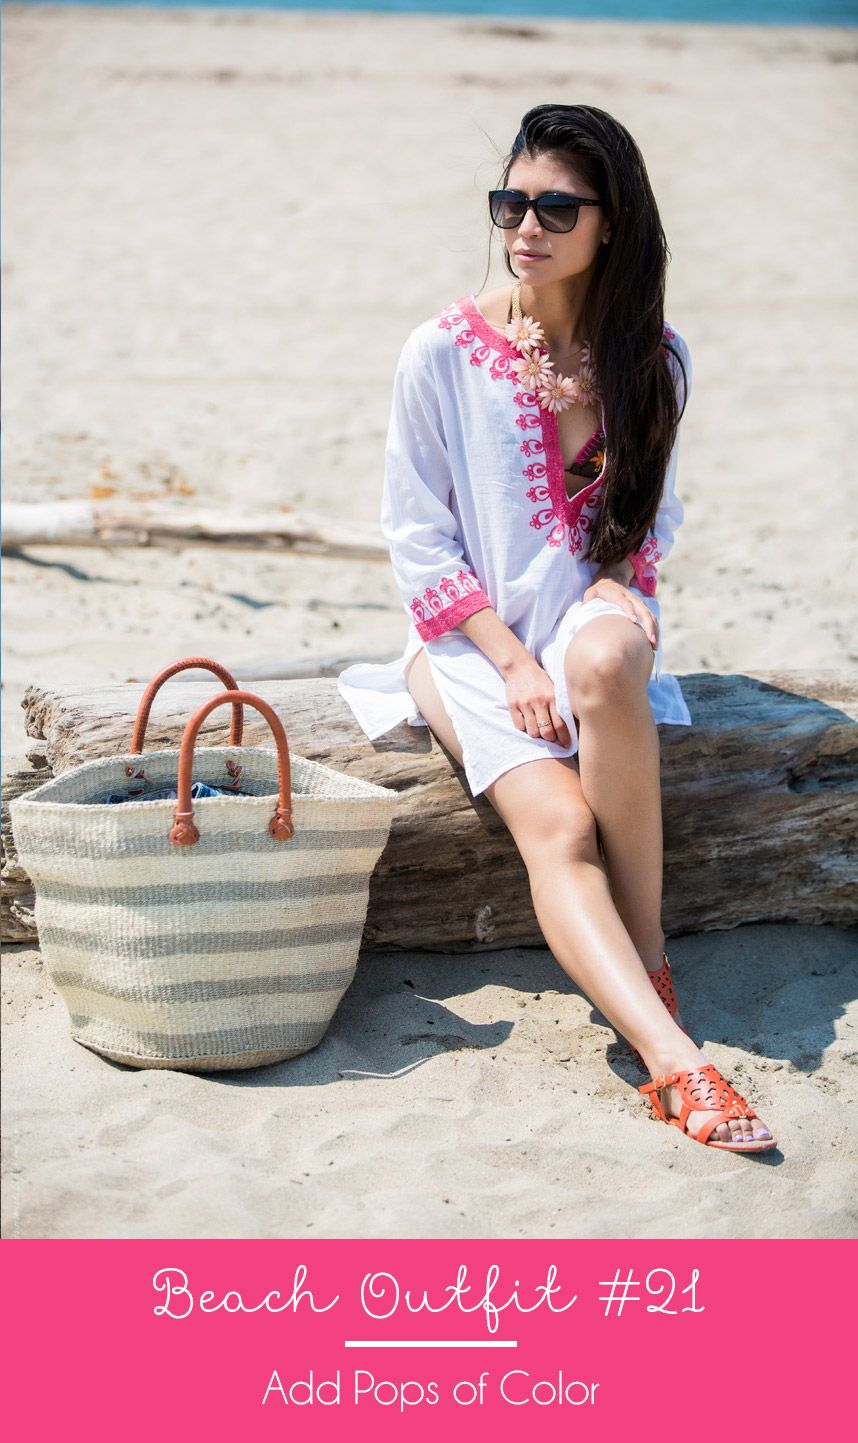 d384775553e How to Wear a Coverup - Visit Stylishlyme.com to view the other 20 summer  outfits